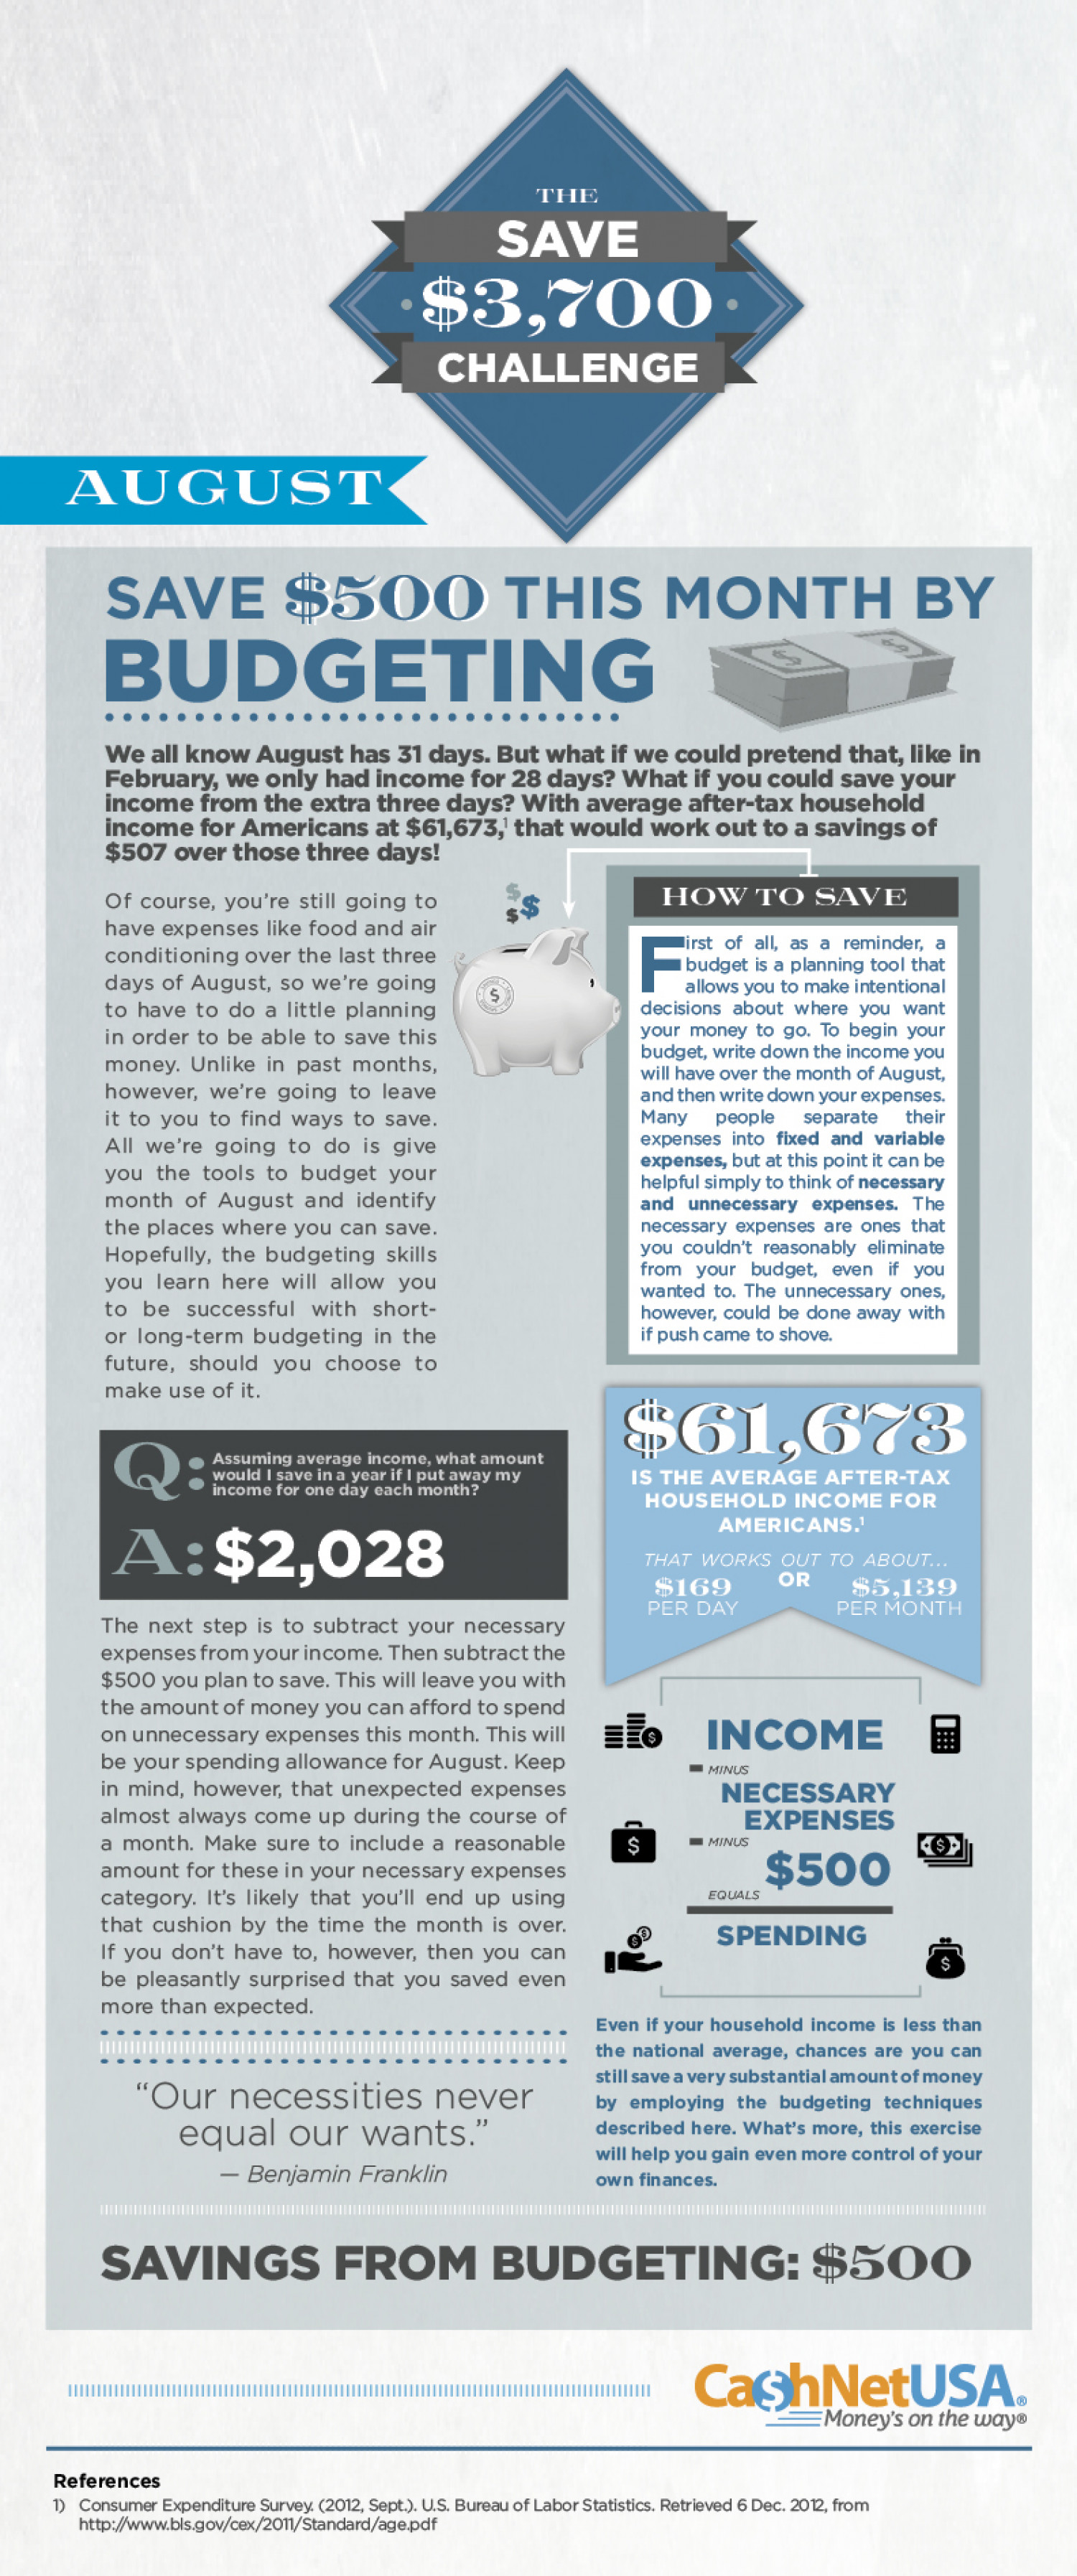 Save $3,700 Challenge - August: Budgeting Infographic